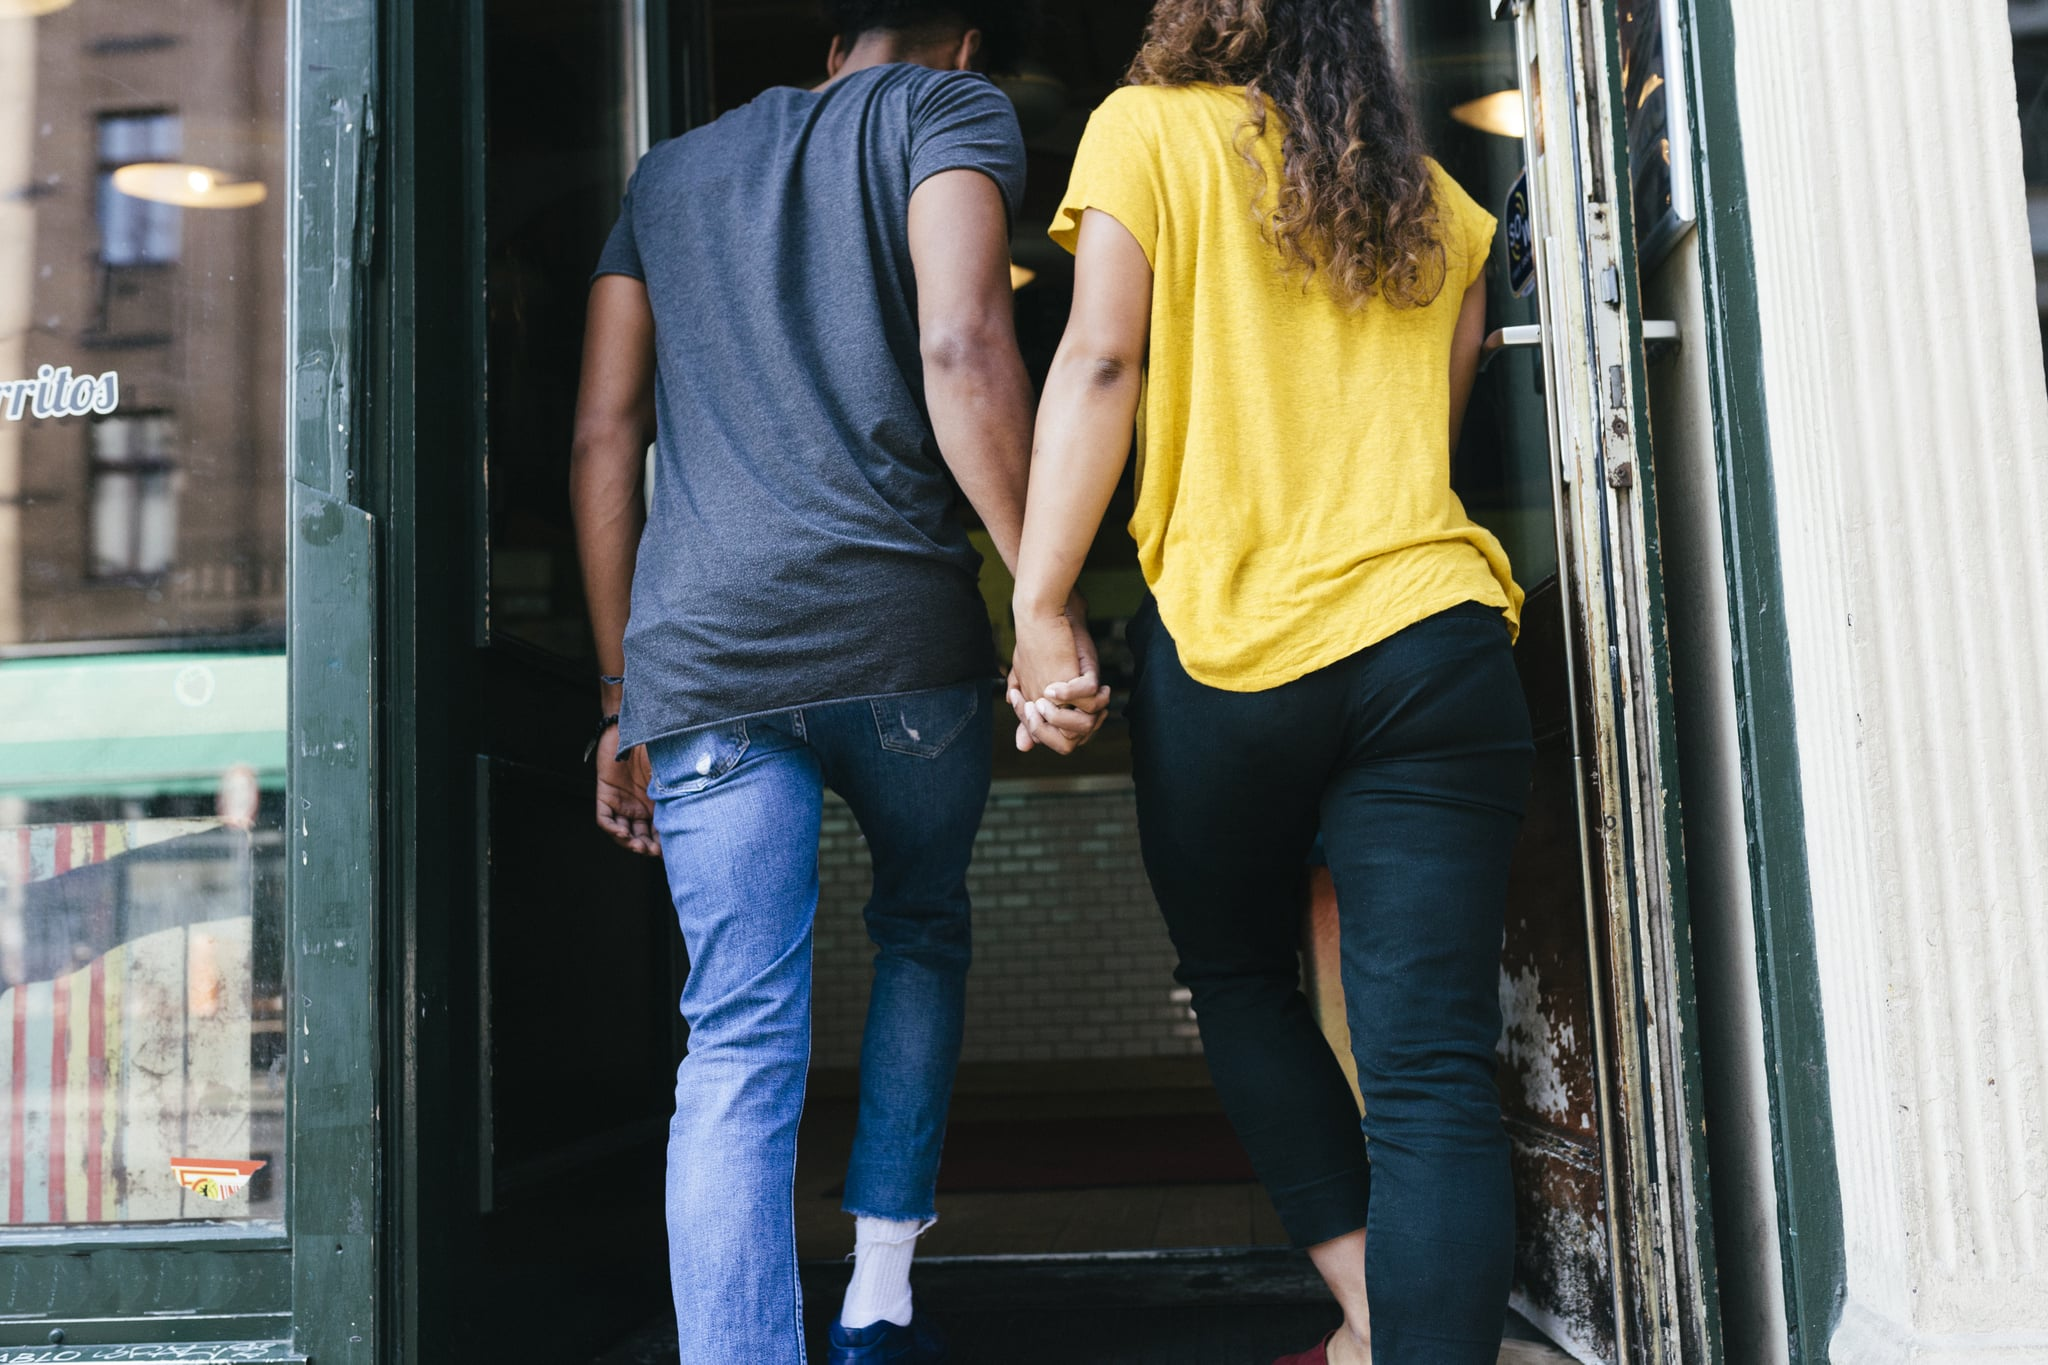 A couple holding hands and entering a restaurant together.